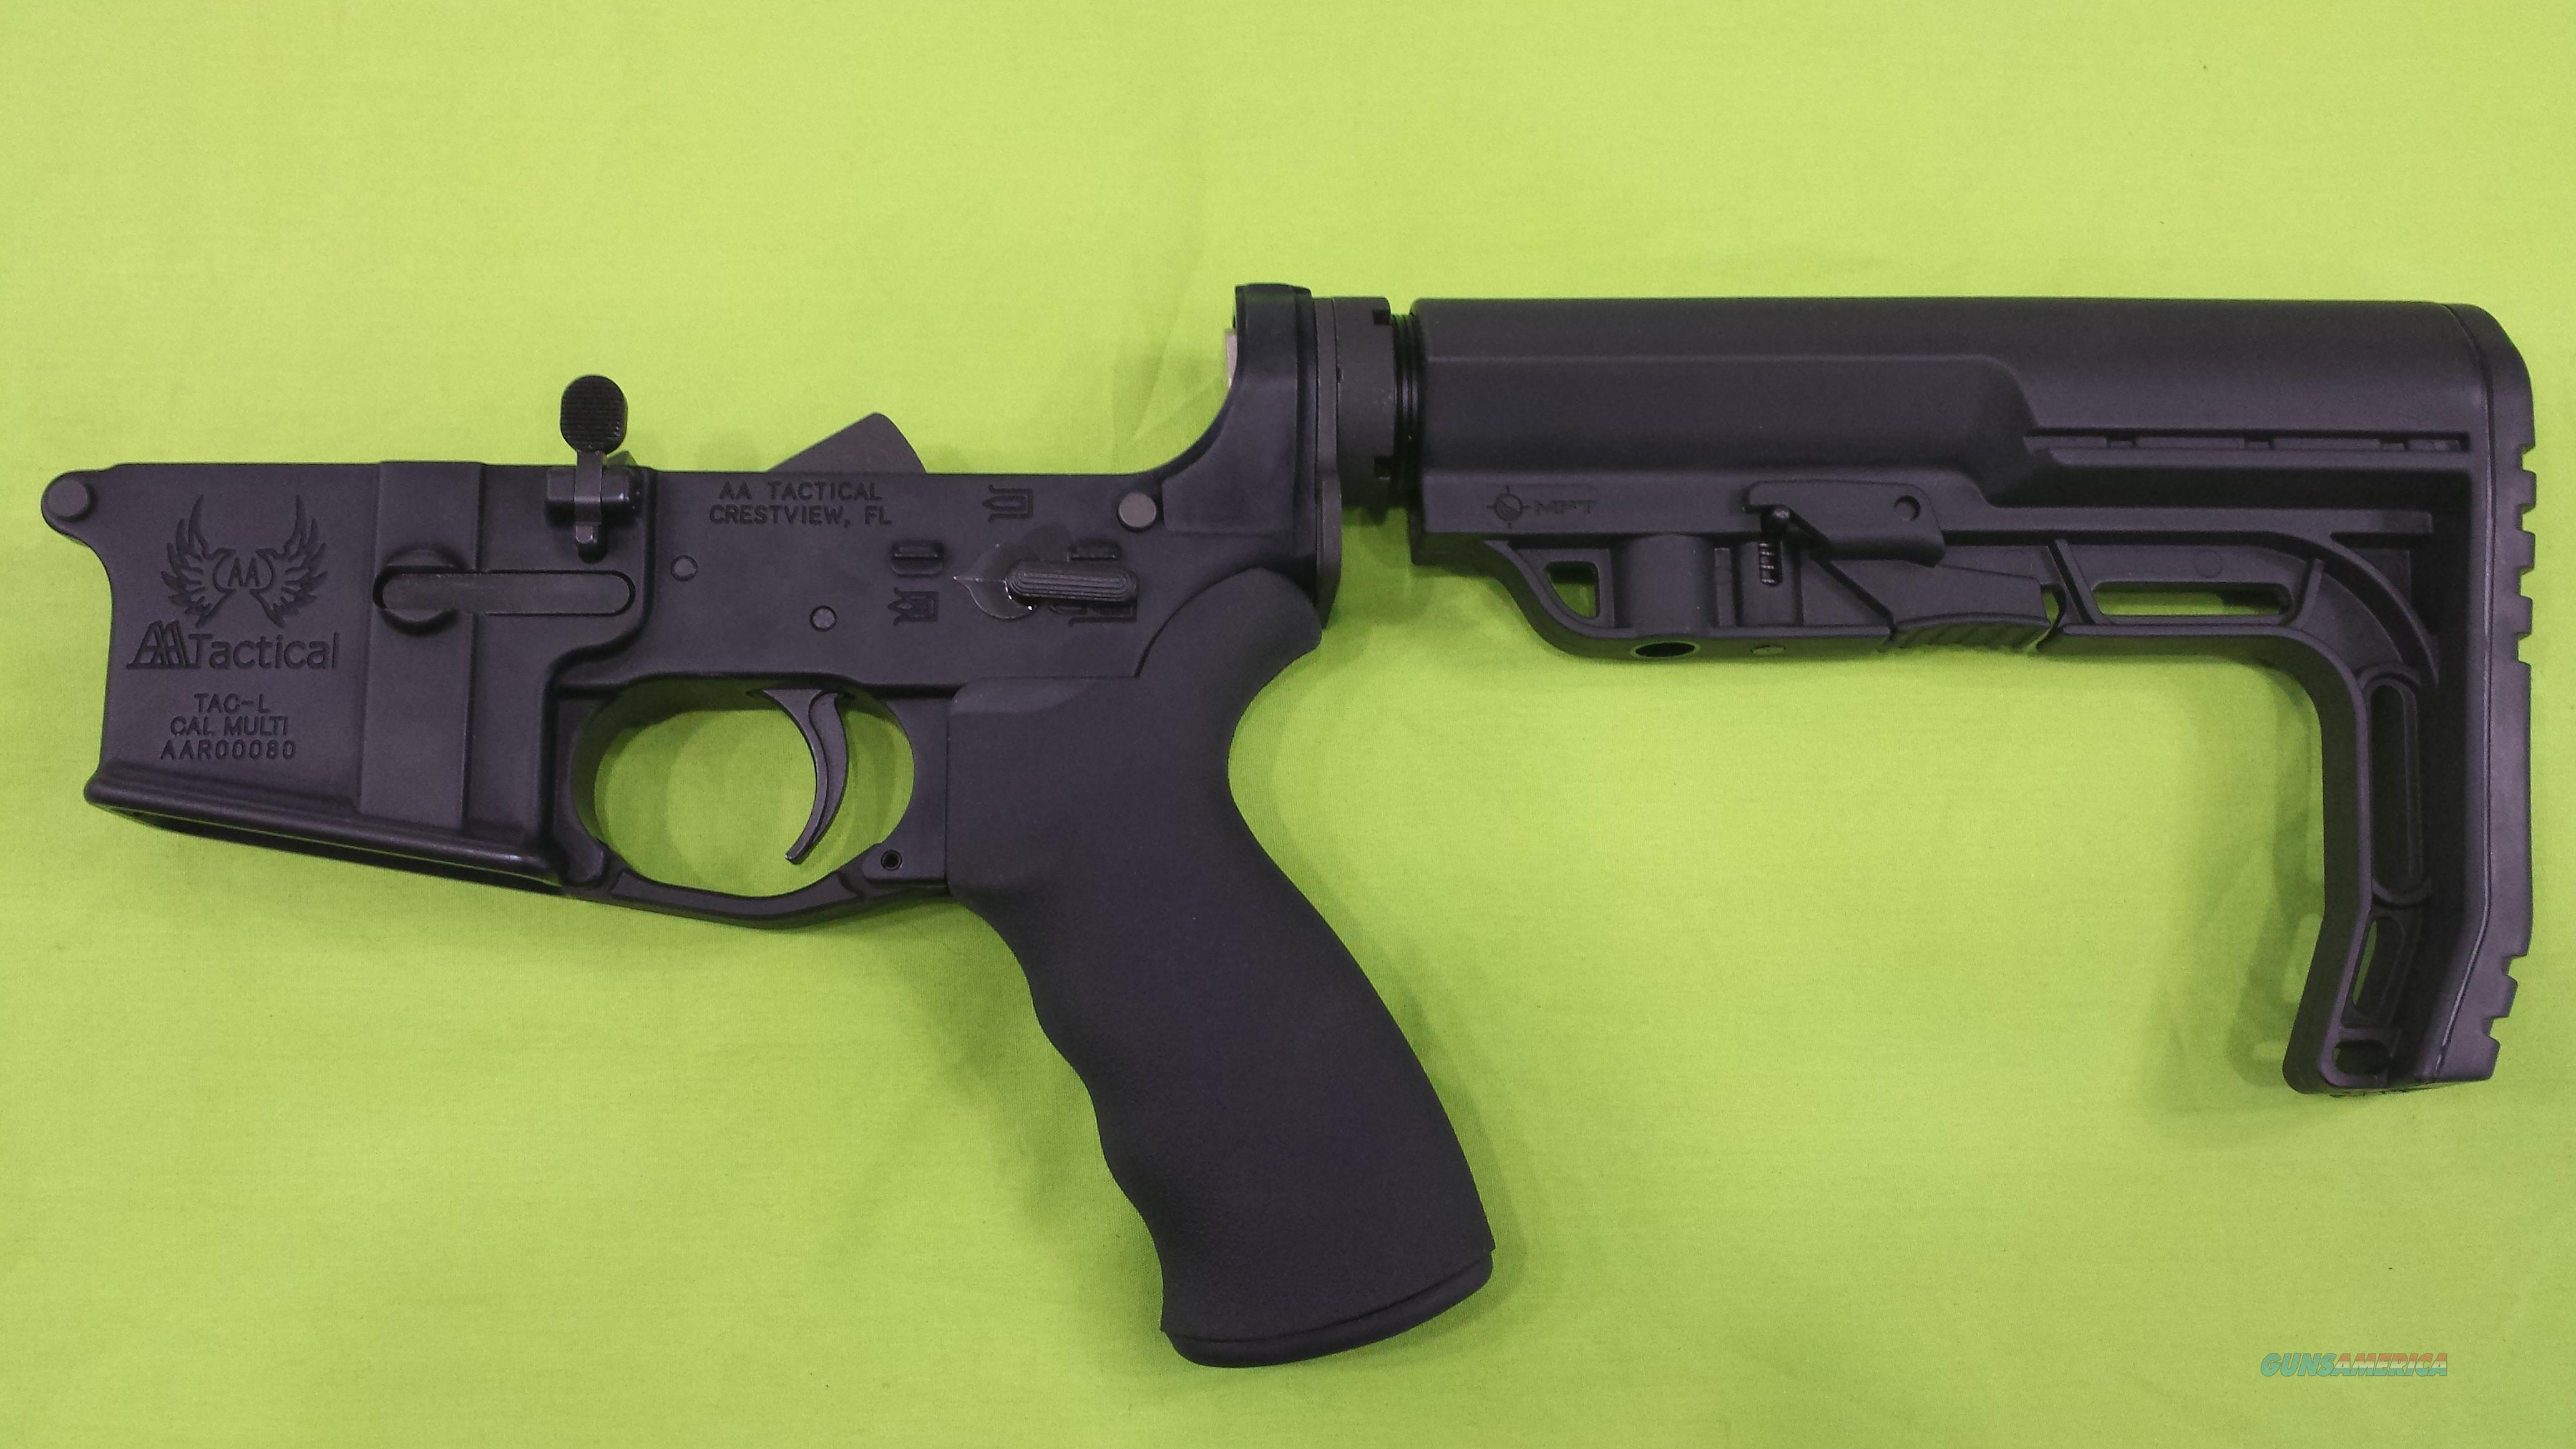 AA TACTICAL TAC-L MFT MINIMALIST BLACK MULTI AR15 COMPLETE LOWER  Guns > Rifles > AR-15 Rifles - Small Manufacturers > Lower Only